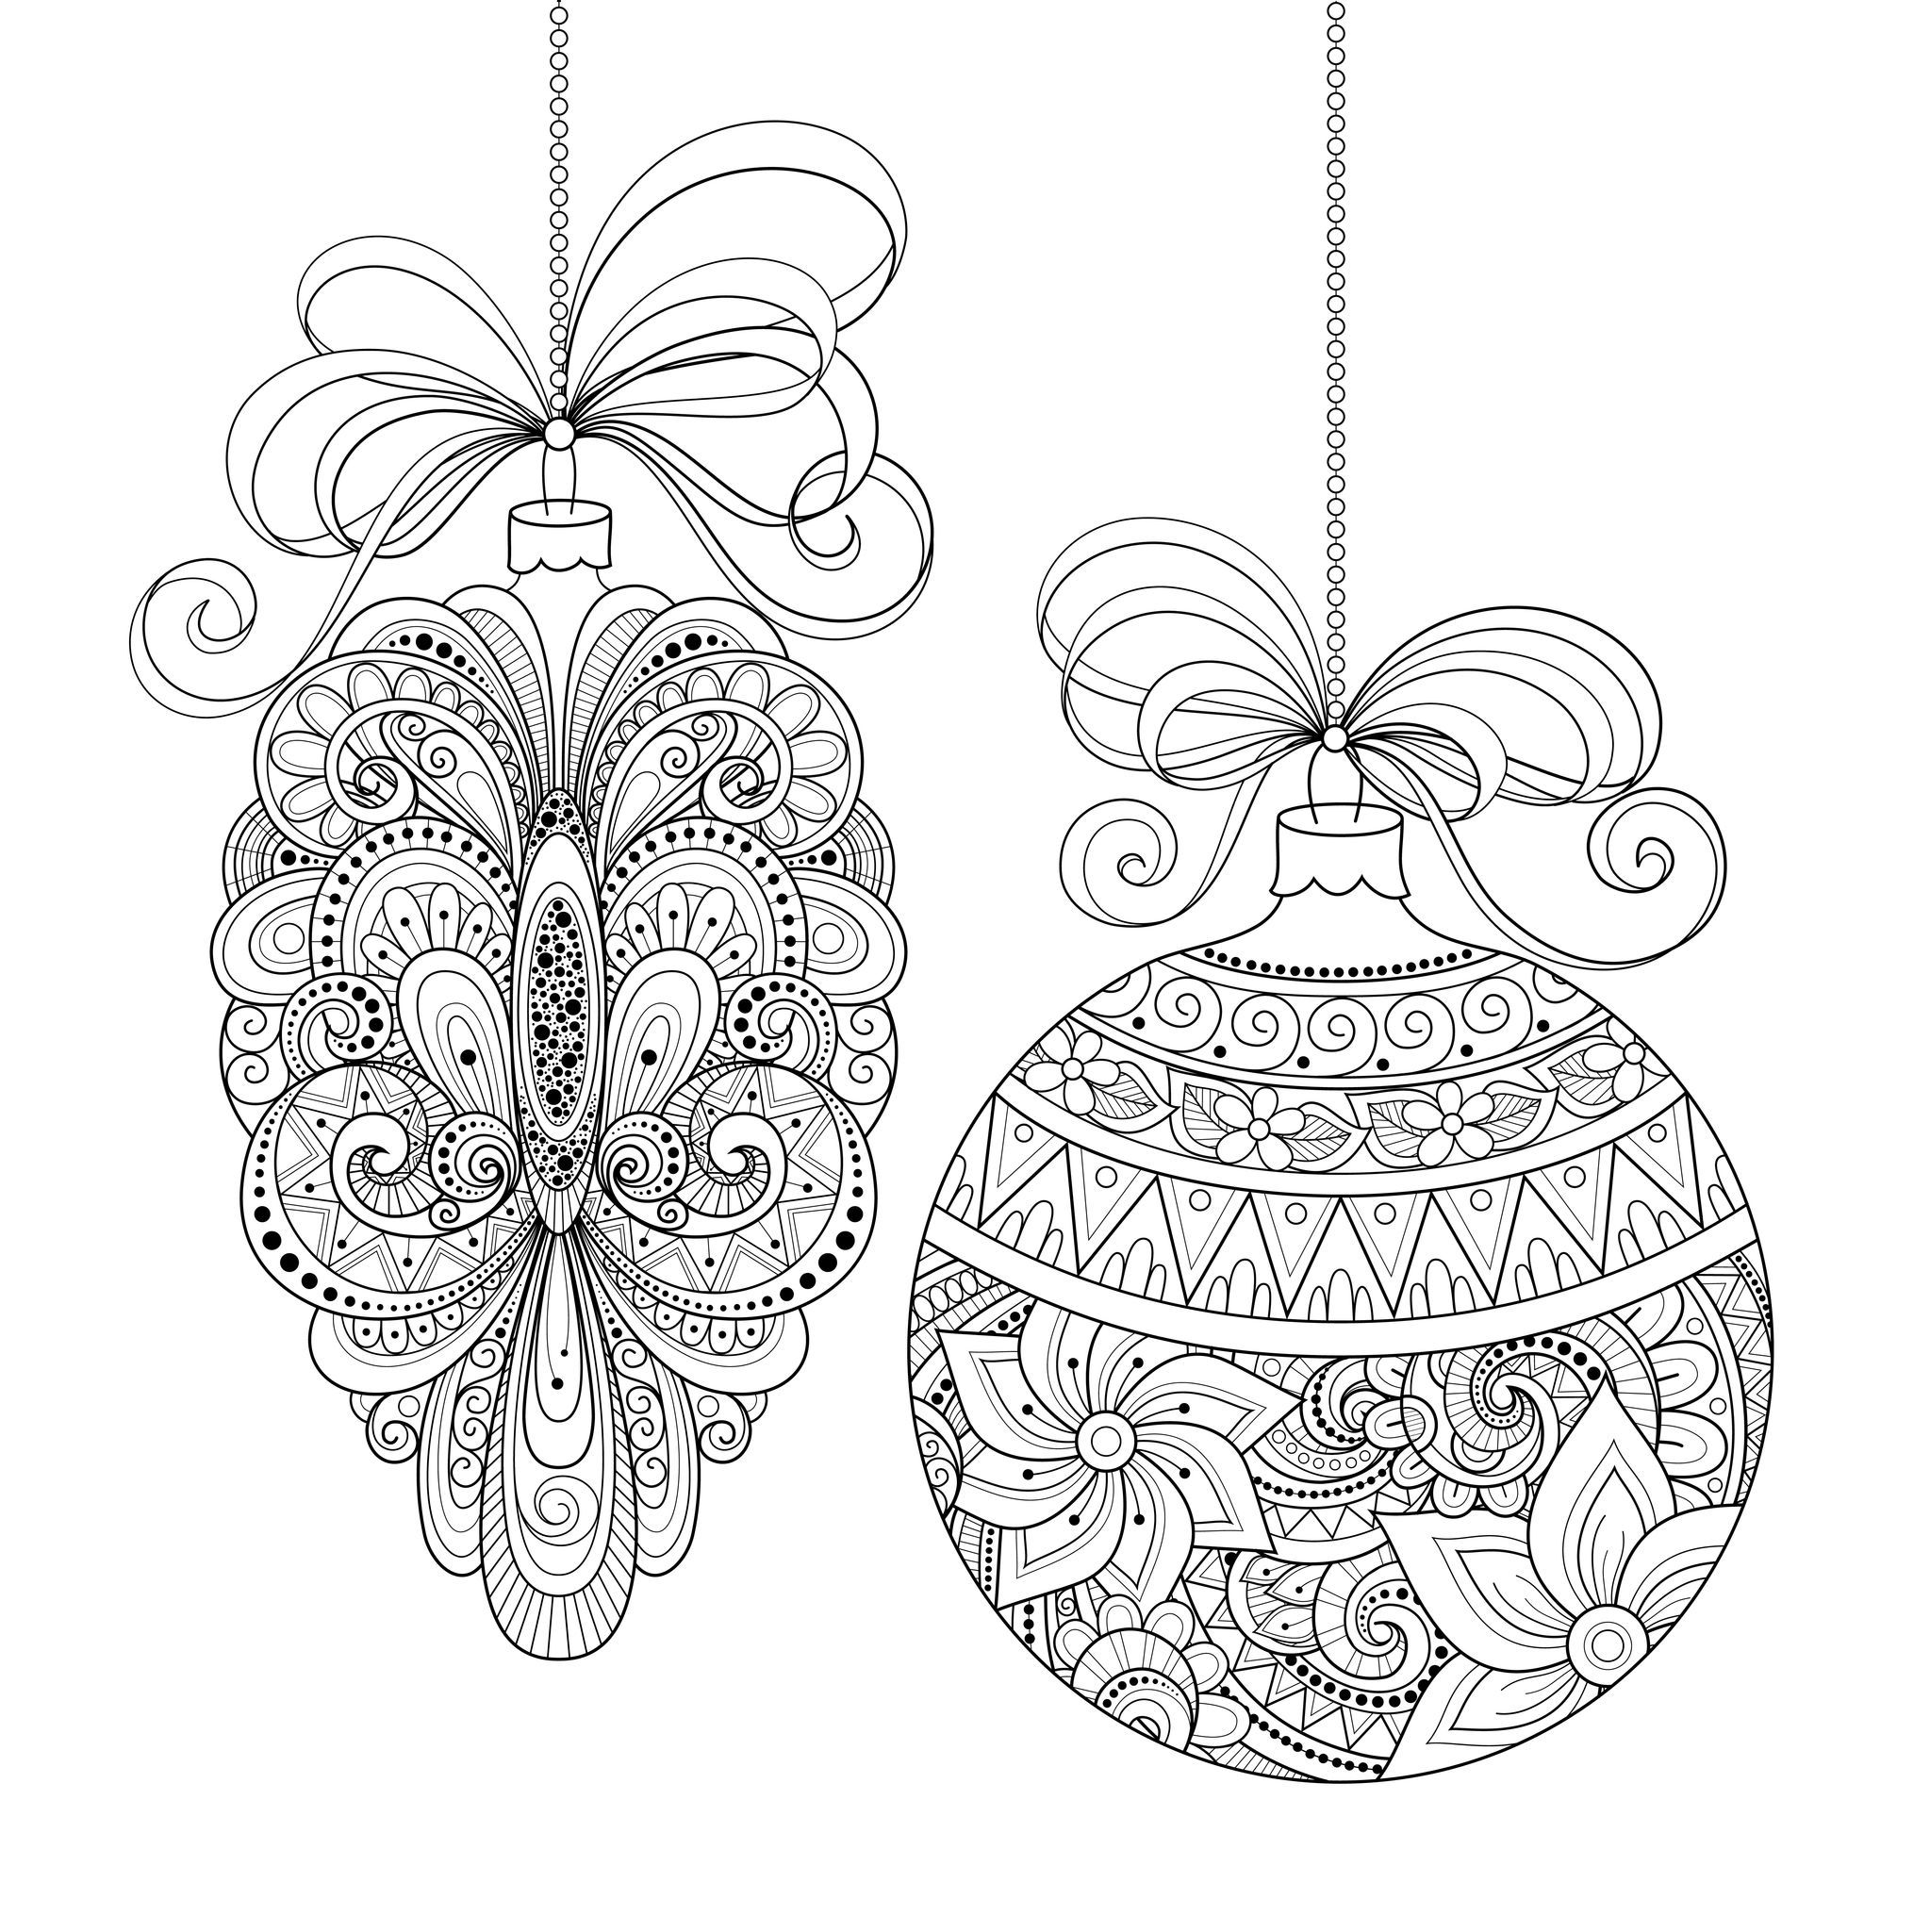 Christmas Coloring Card Printable With Ornaments Use This Page To Make Your Own